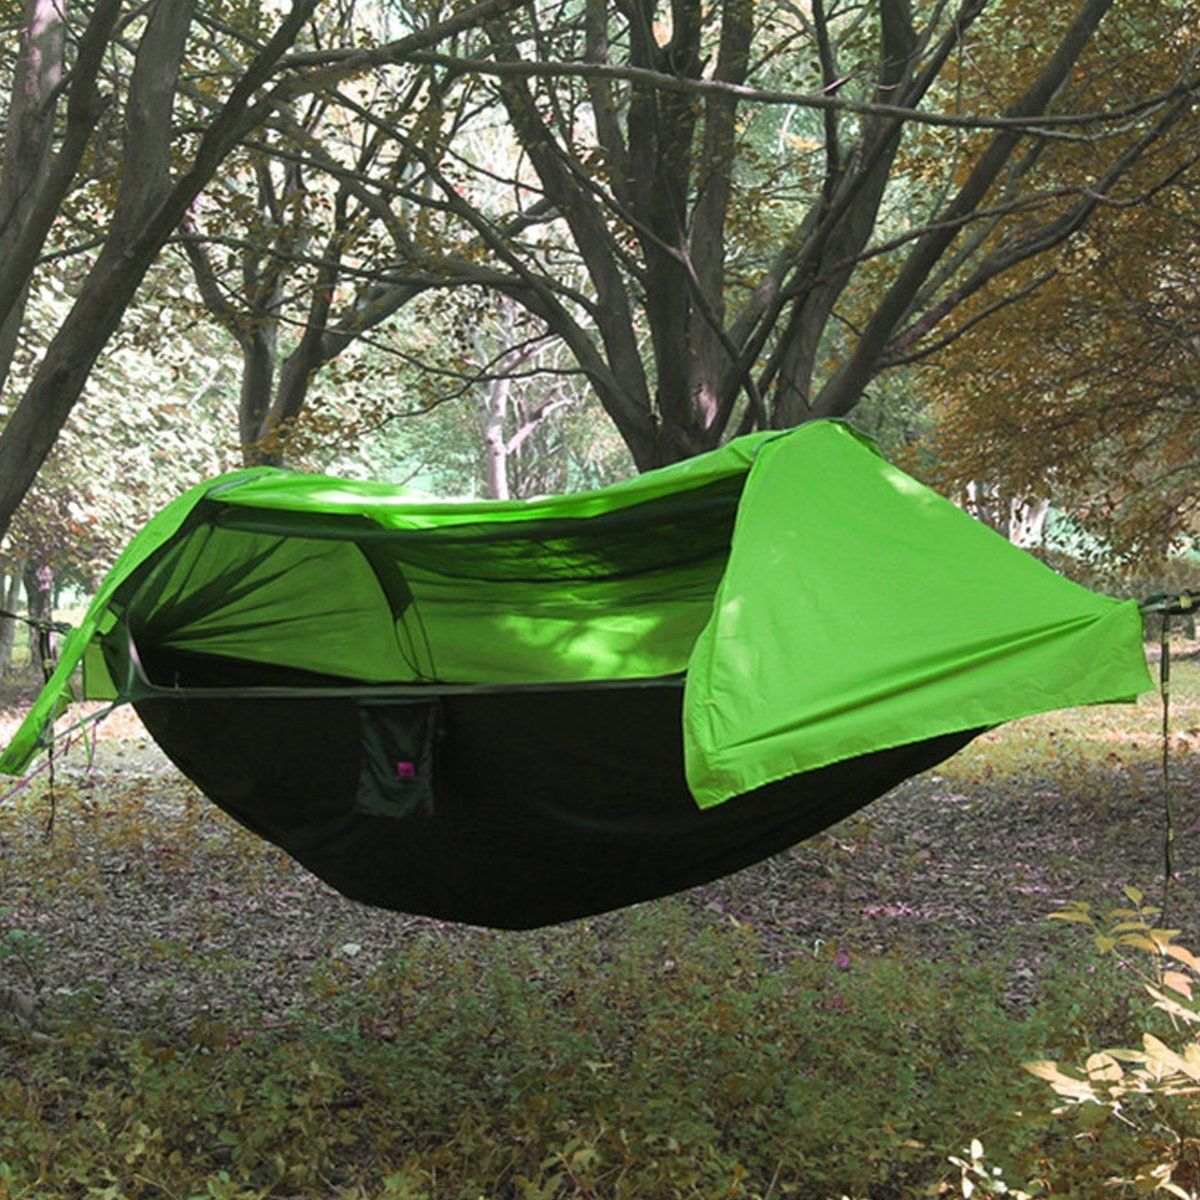 amazon    patent camping hammock with mosquito   and rainfly cover  green  amazon    patent camping hammock with mosquito   and rainfly      rh   pinterest co uk